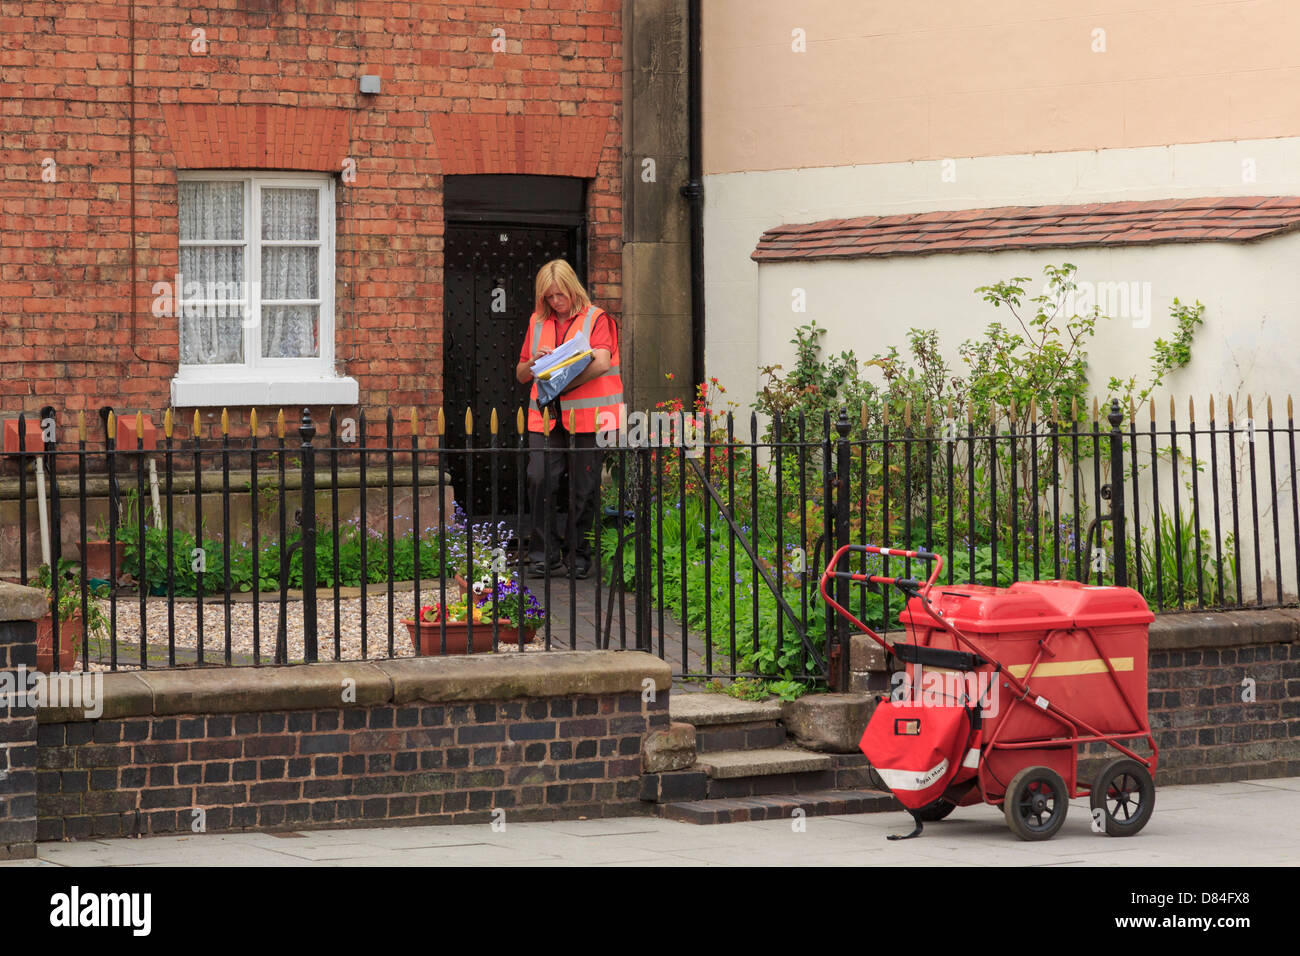 A female Royal Mail postal worker delivering post to a house on her round in Newport, Shropshire, England, UK, Britain - Stock Image